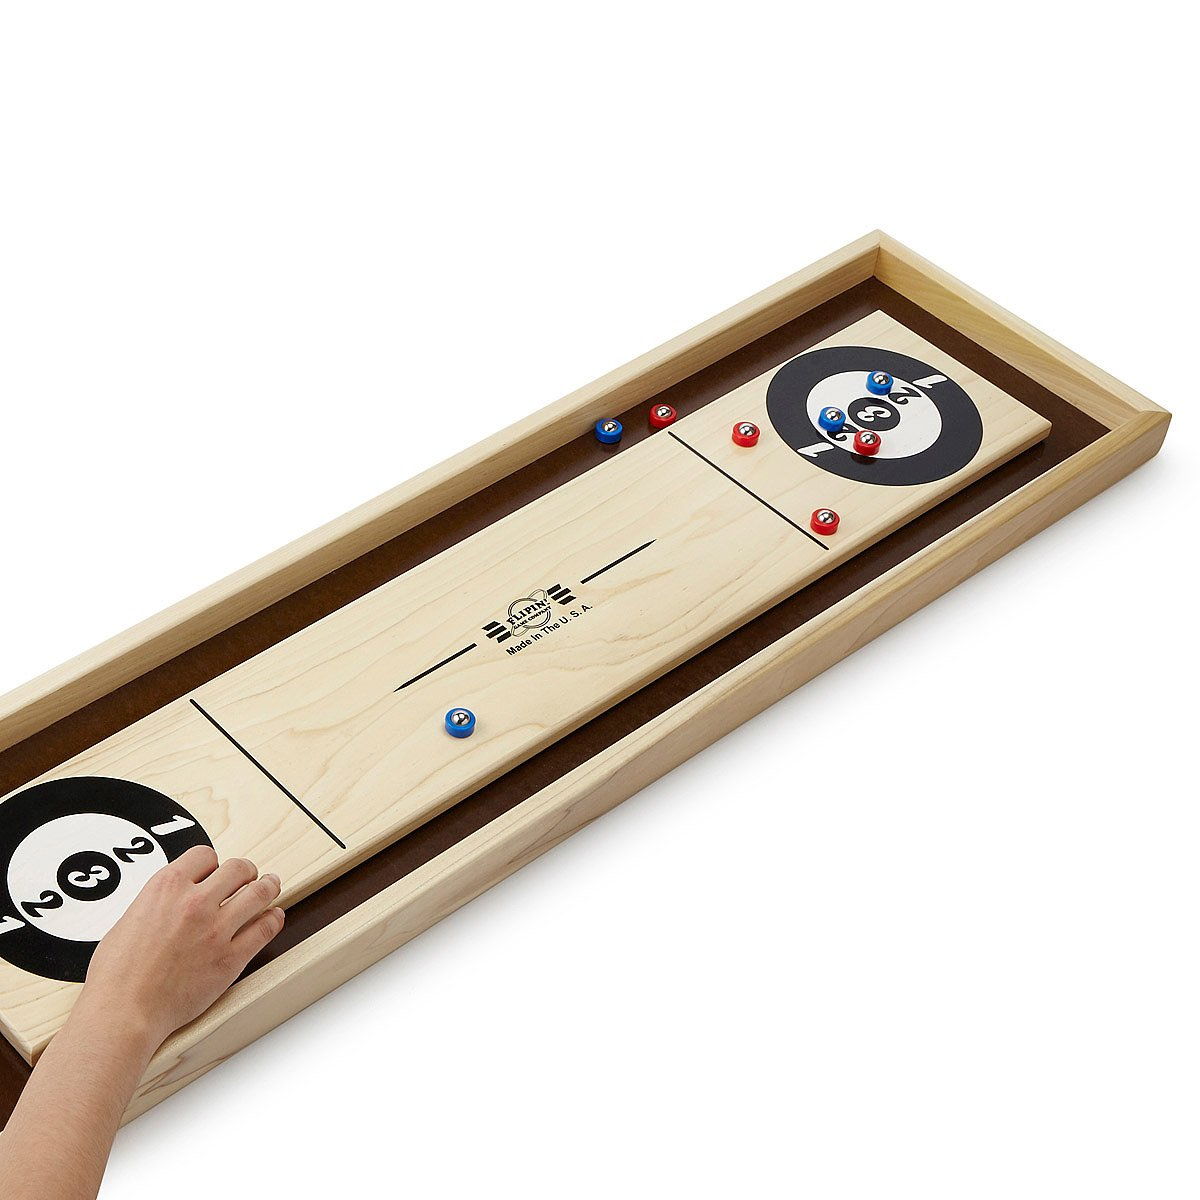 Tabletop Shuffle Board Wooden Tabletop Game UncommonGoods - Portable shuffleboard table